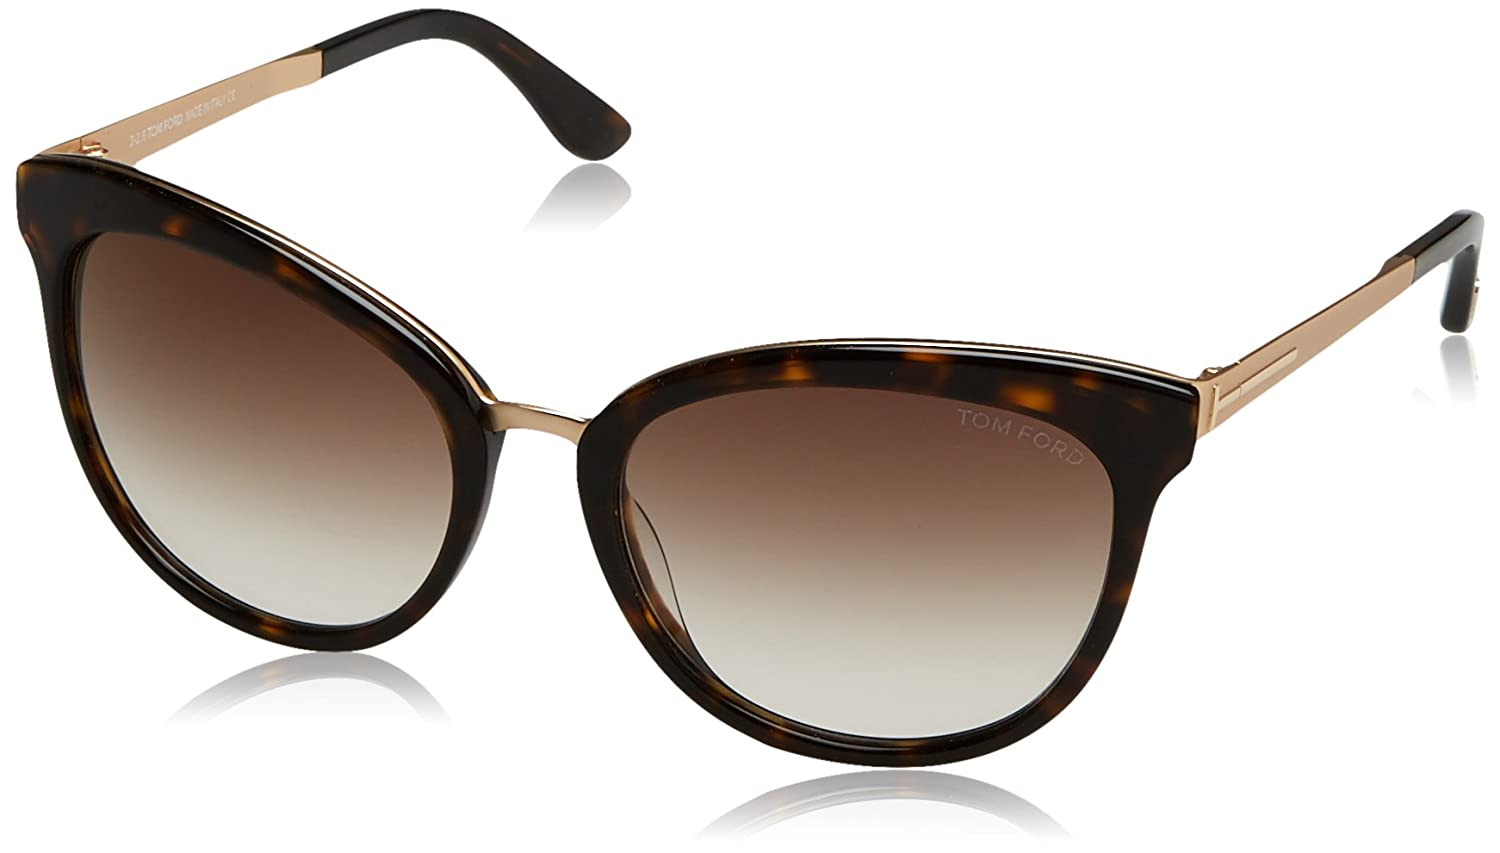 33728afcb802e Amazon.com  Tom Ford Emma 52G Tortoise Gold Emma Cats Eyes Sunglasses Lens  Category 2 Siz  Tom Ford  Clothing